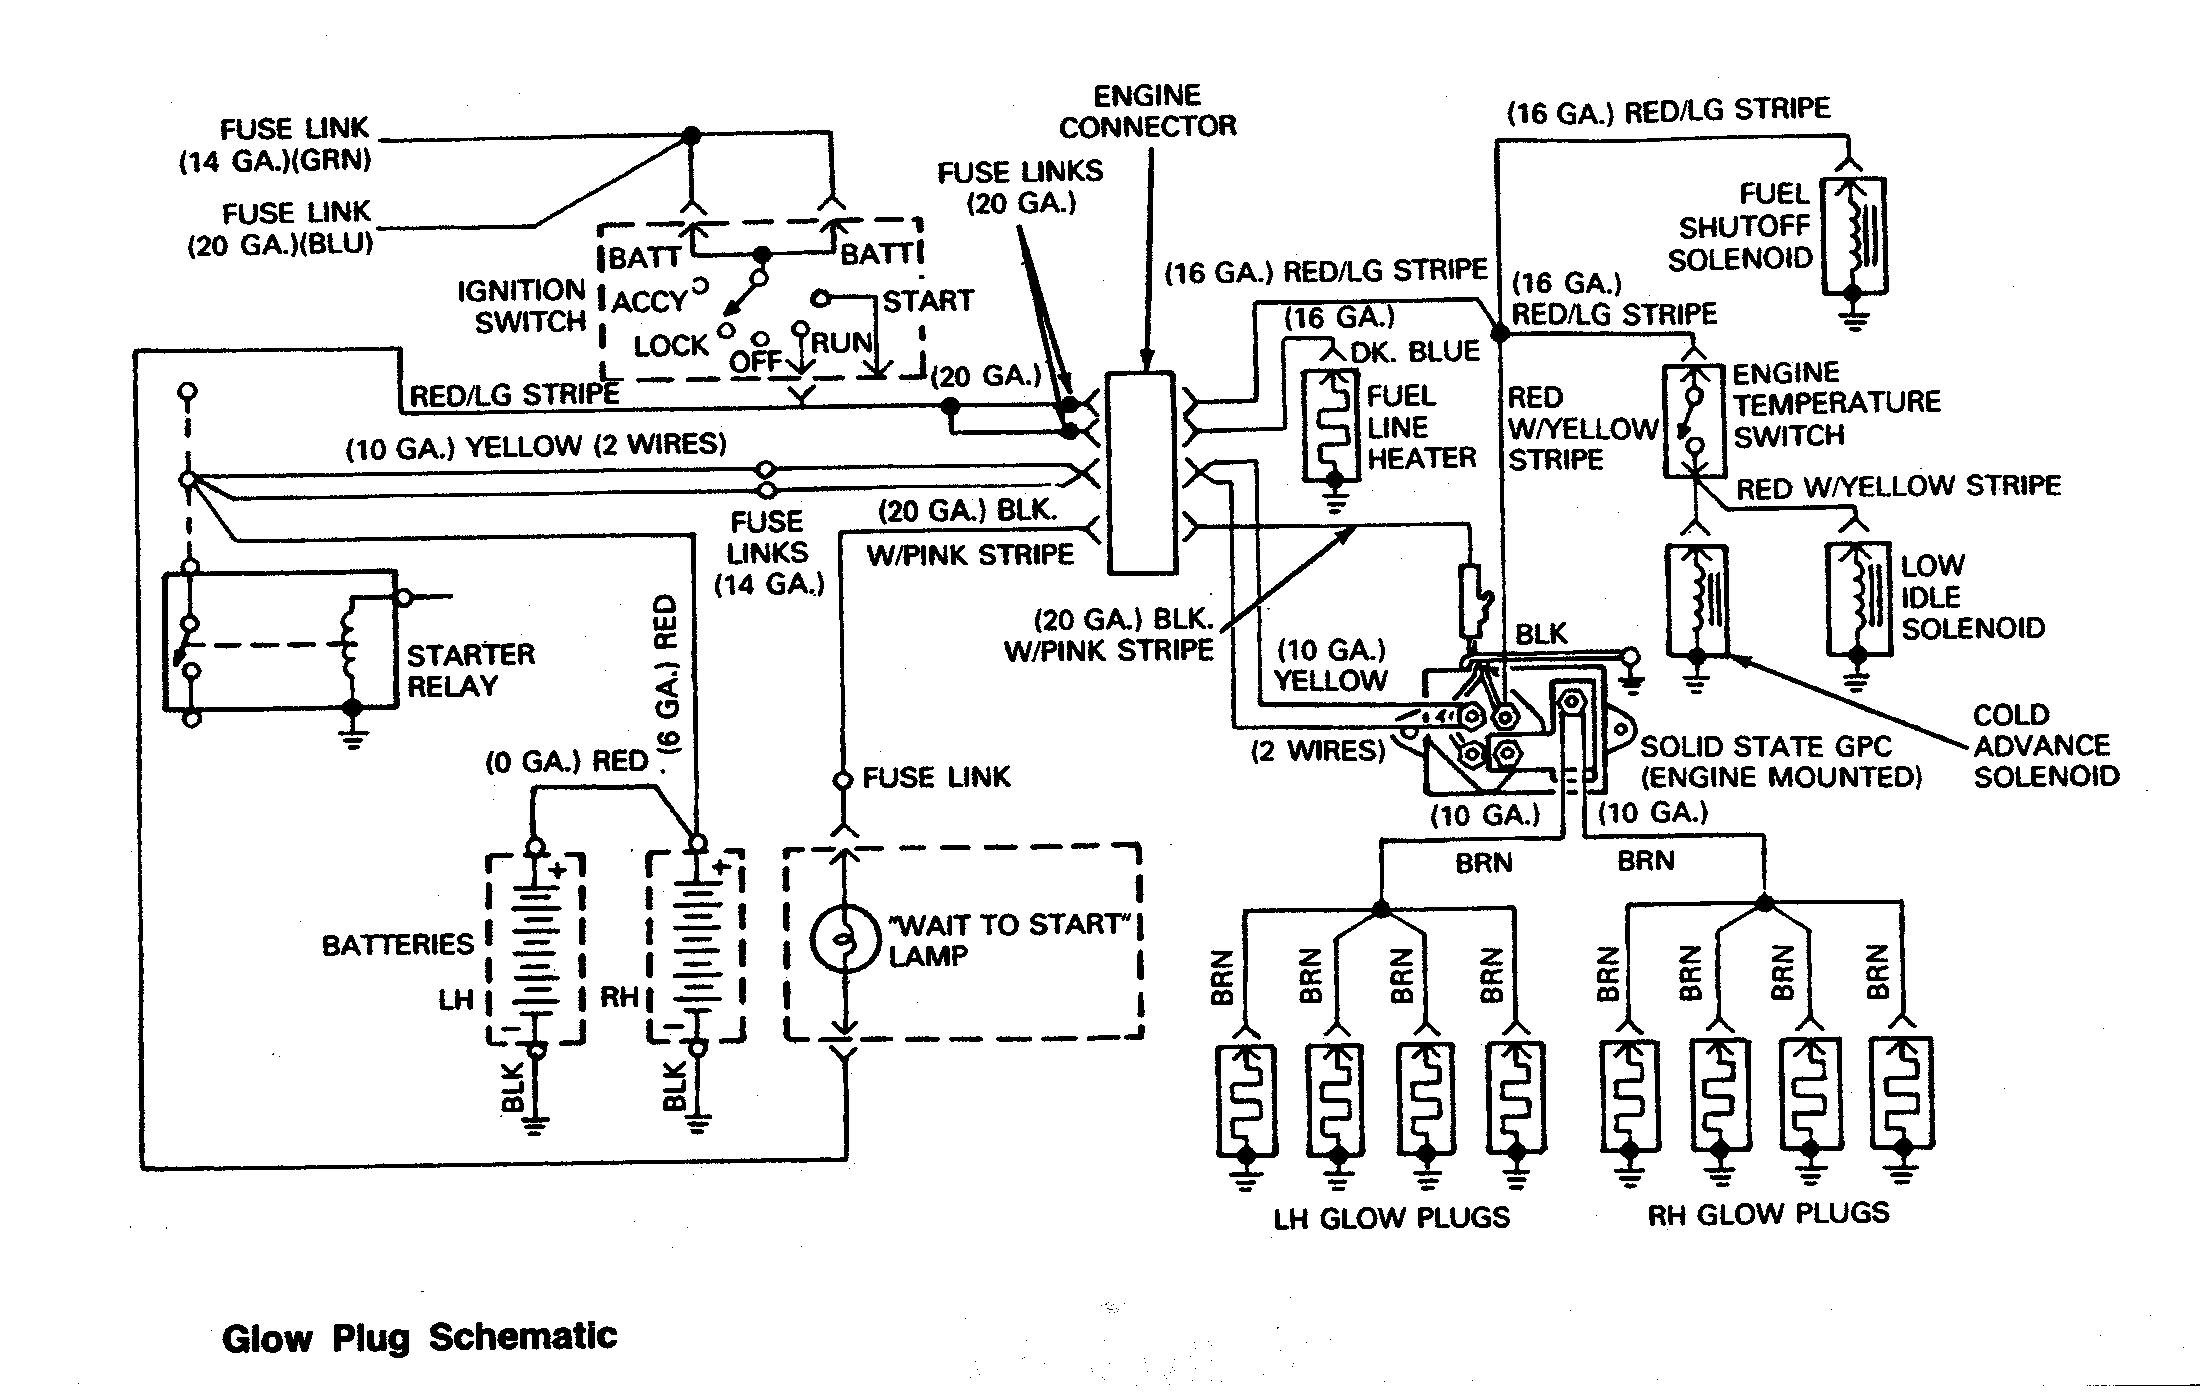 7 3 Powerstroke Parts Diagram Glow Engine Diagram Experts Wiring Diagram • Of 7 3 Powerstroke Parts Diagram 1997 7 3l Engine Diagram Experts Wiring Diagram •